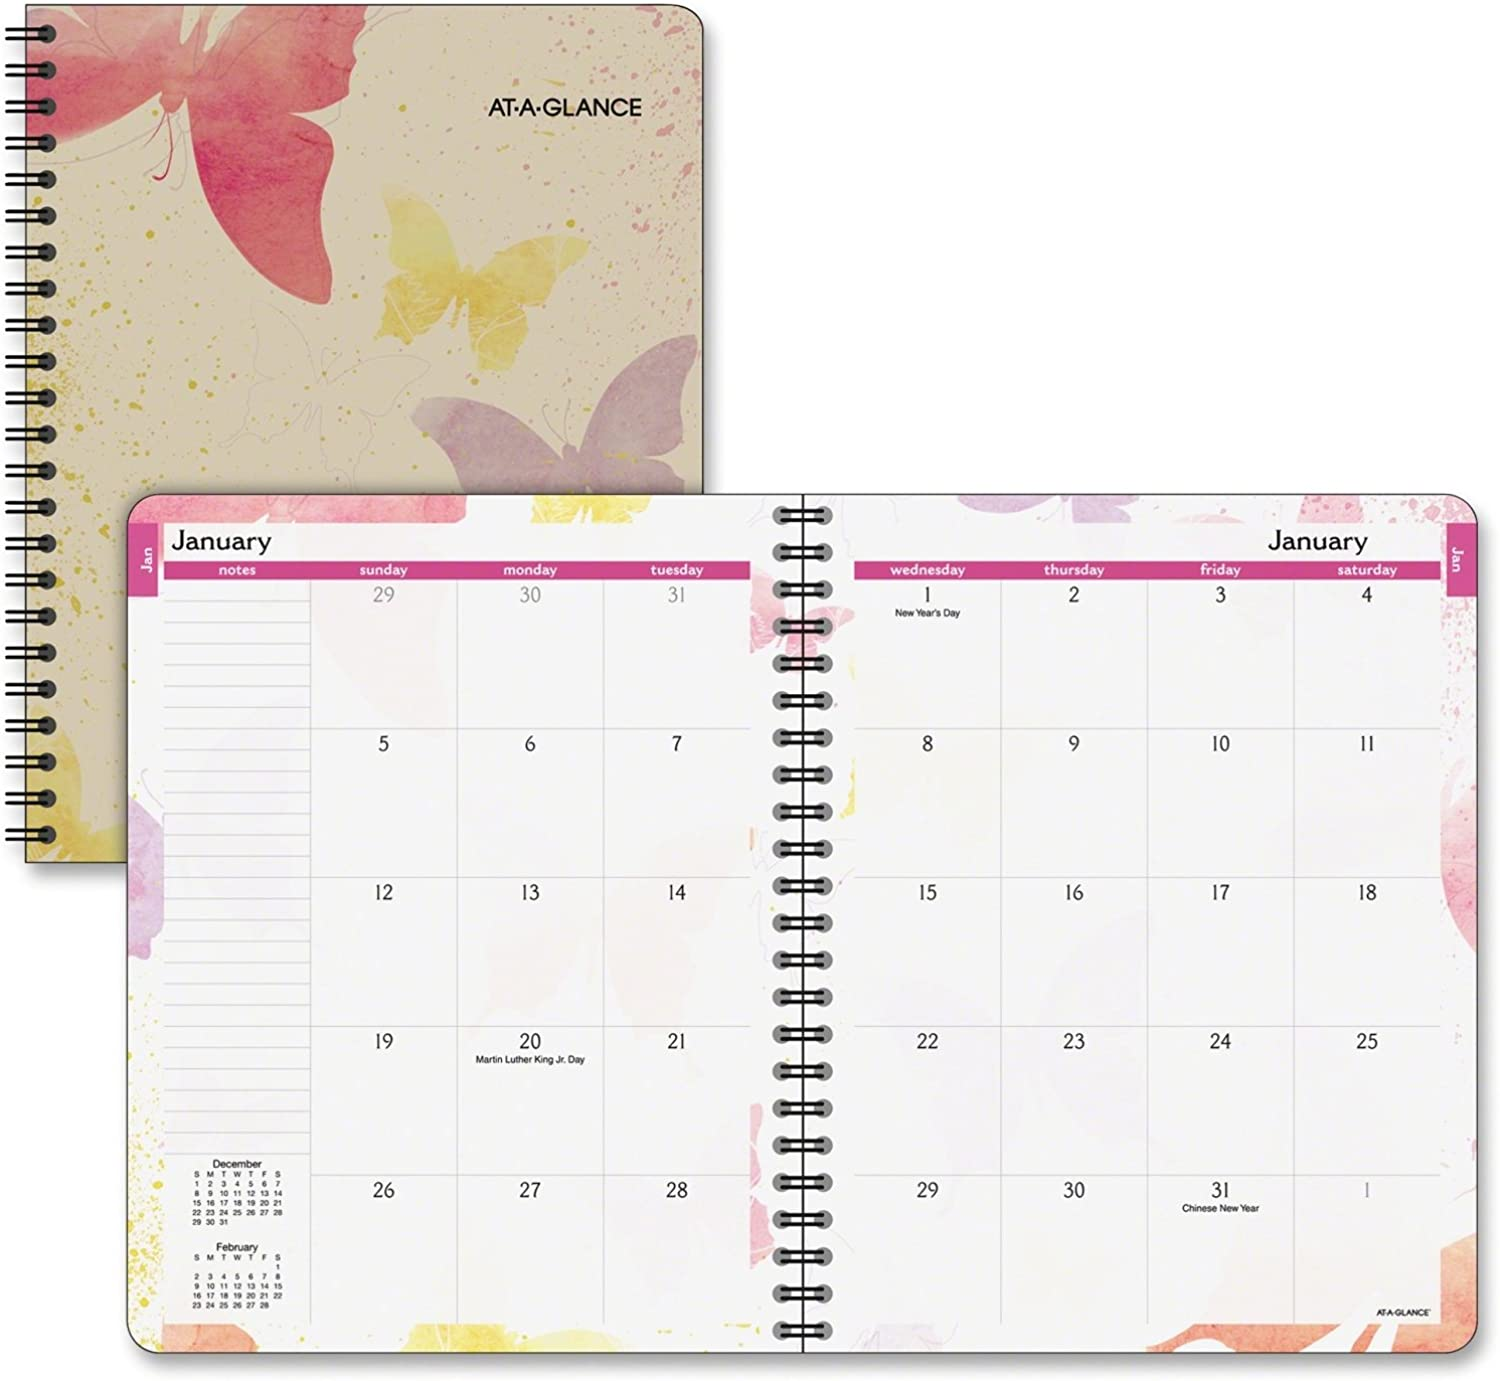 AT-A-GLANCE Monthly Planner 2017, WaterFarbes, 6-7 8 x 8-3 4 Inches (791-800G) by At-A-Glance B00WWVQLGM   Moderate Kosten